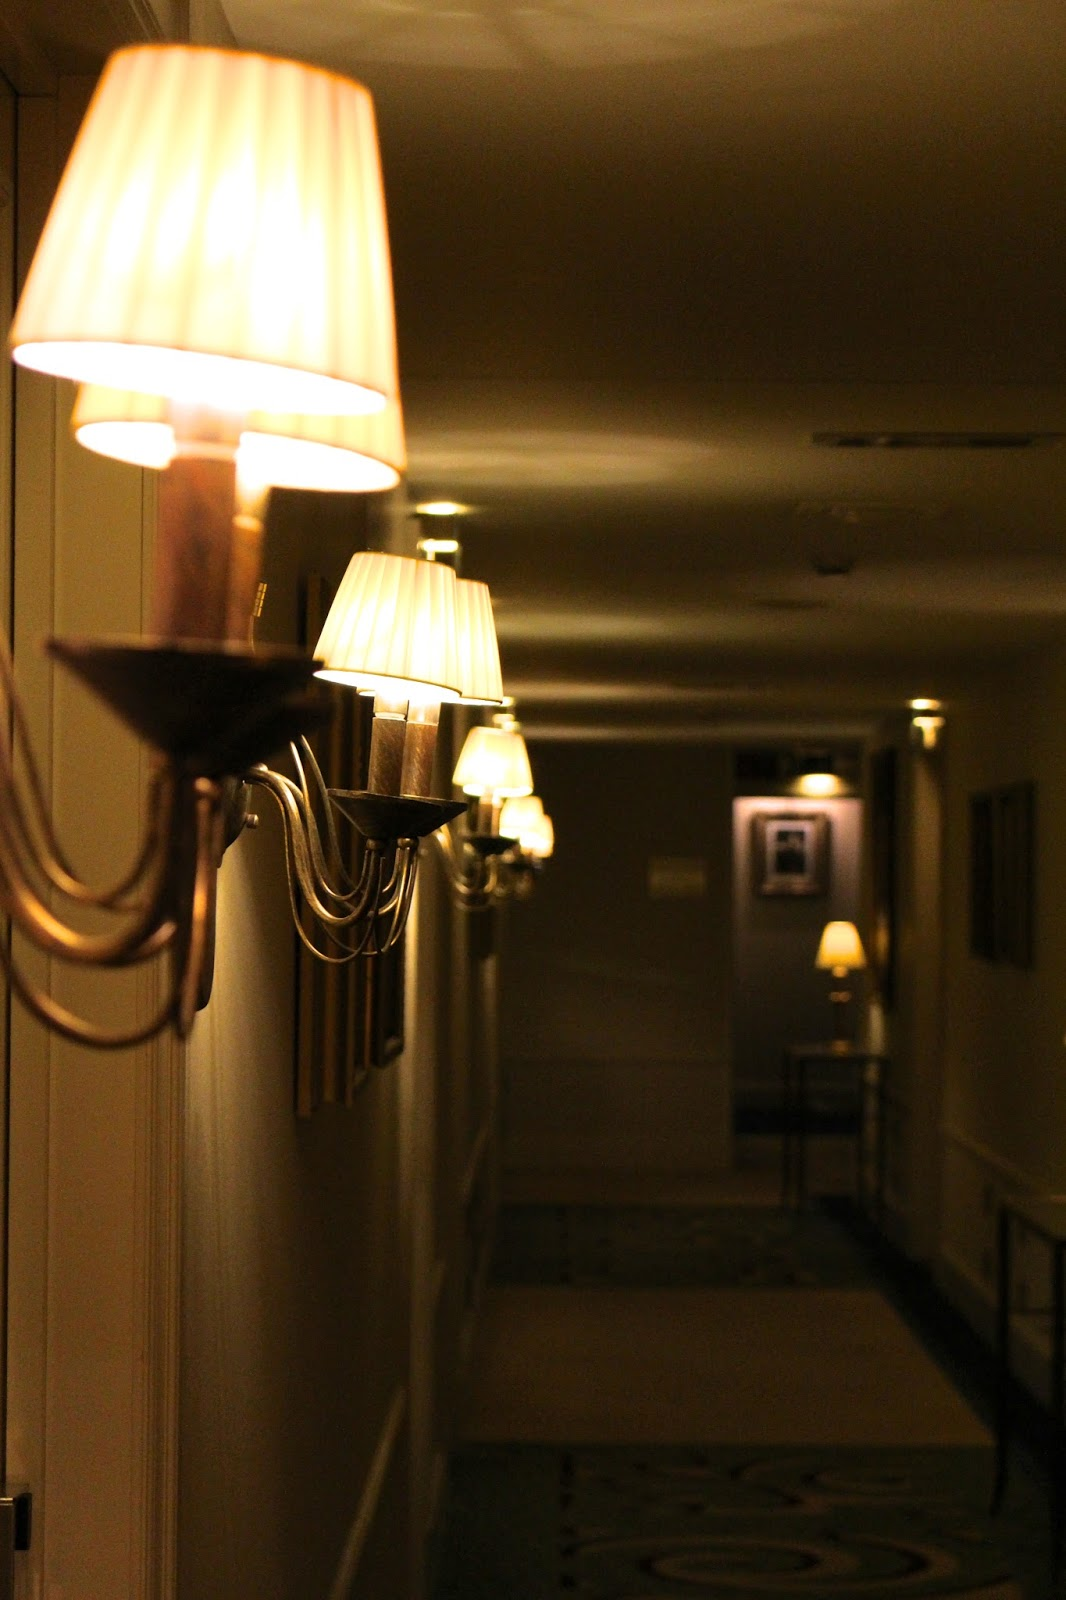 Luxury hotel's corridor by night